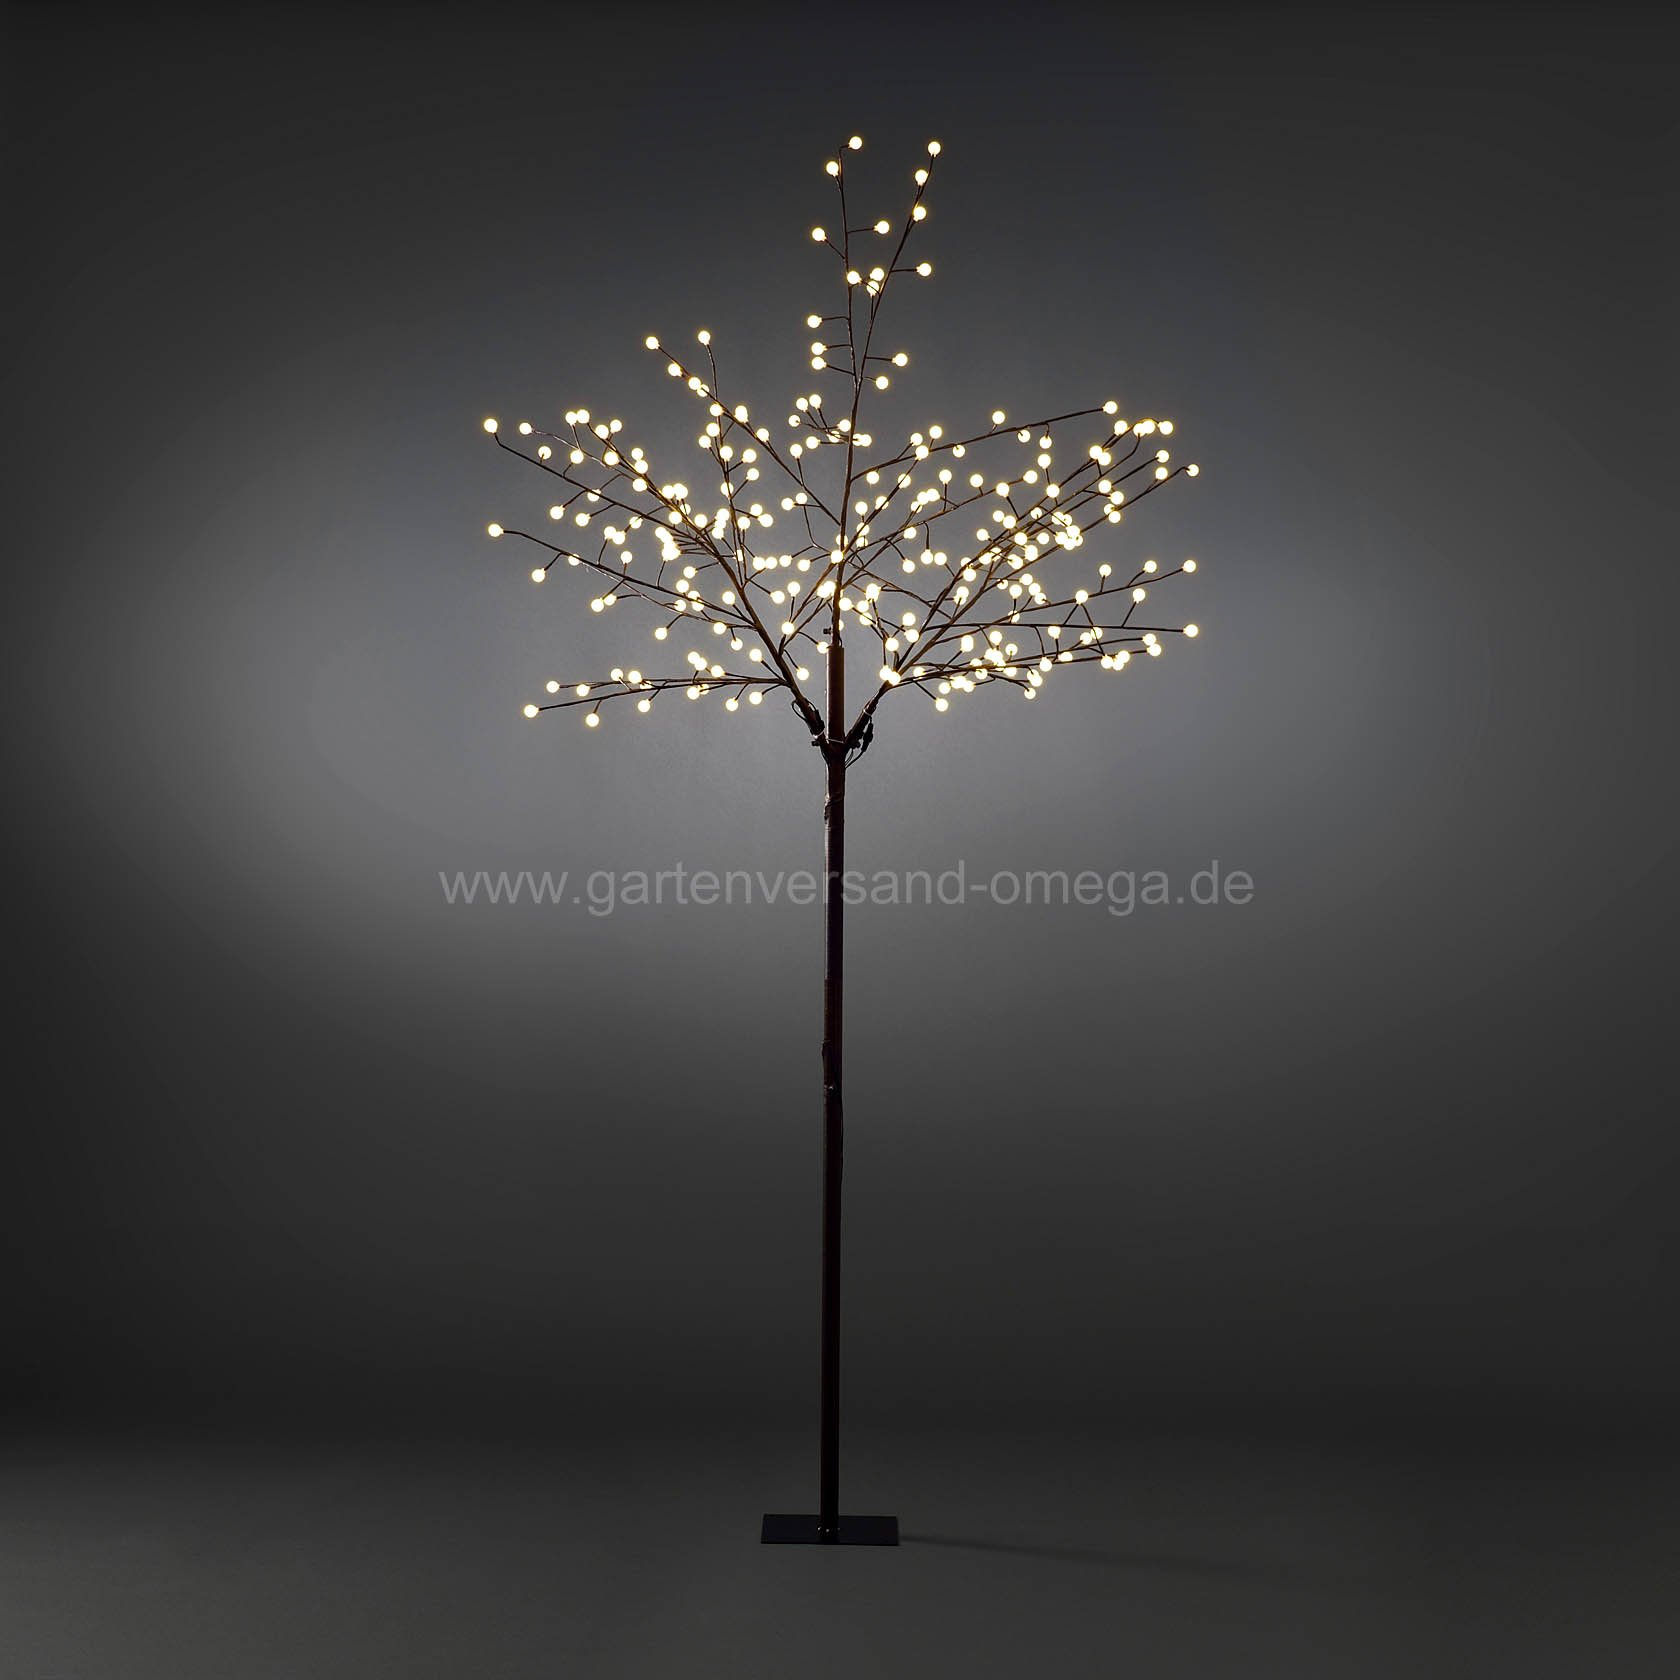 led lichterbaum gro 240 led gro er led baum vorgartendekoration weihnachten led baum aussen. Black Bedroom Furniture Sets. Home Design Ideas